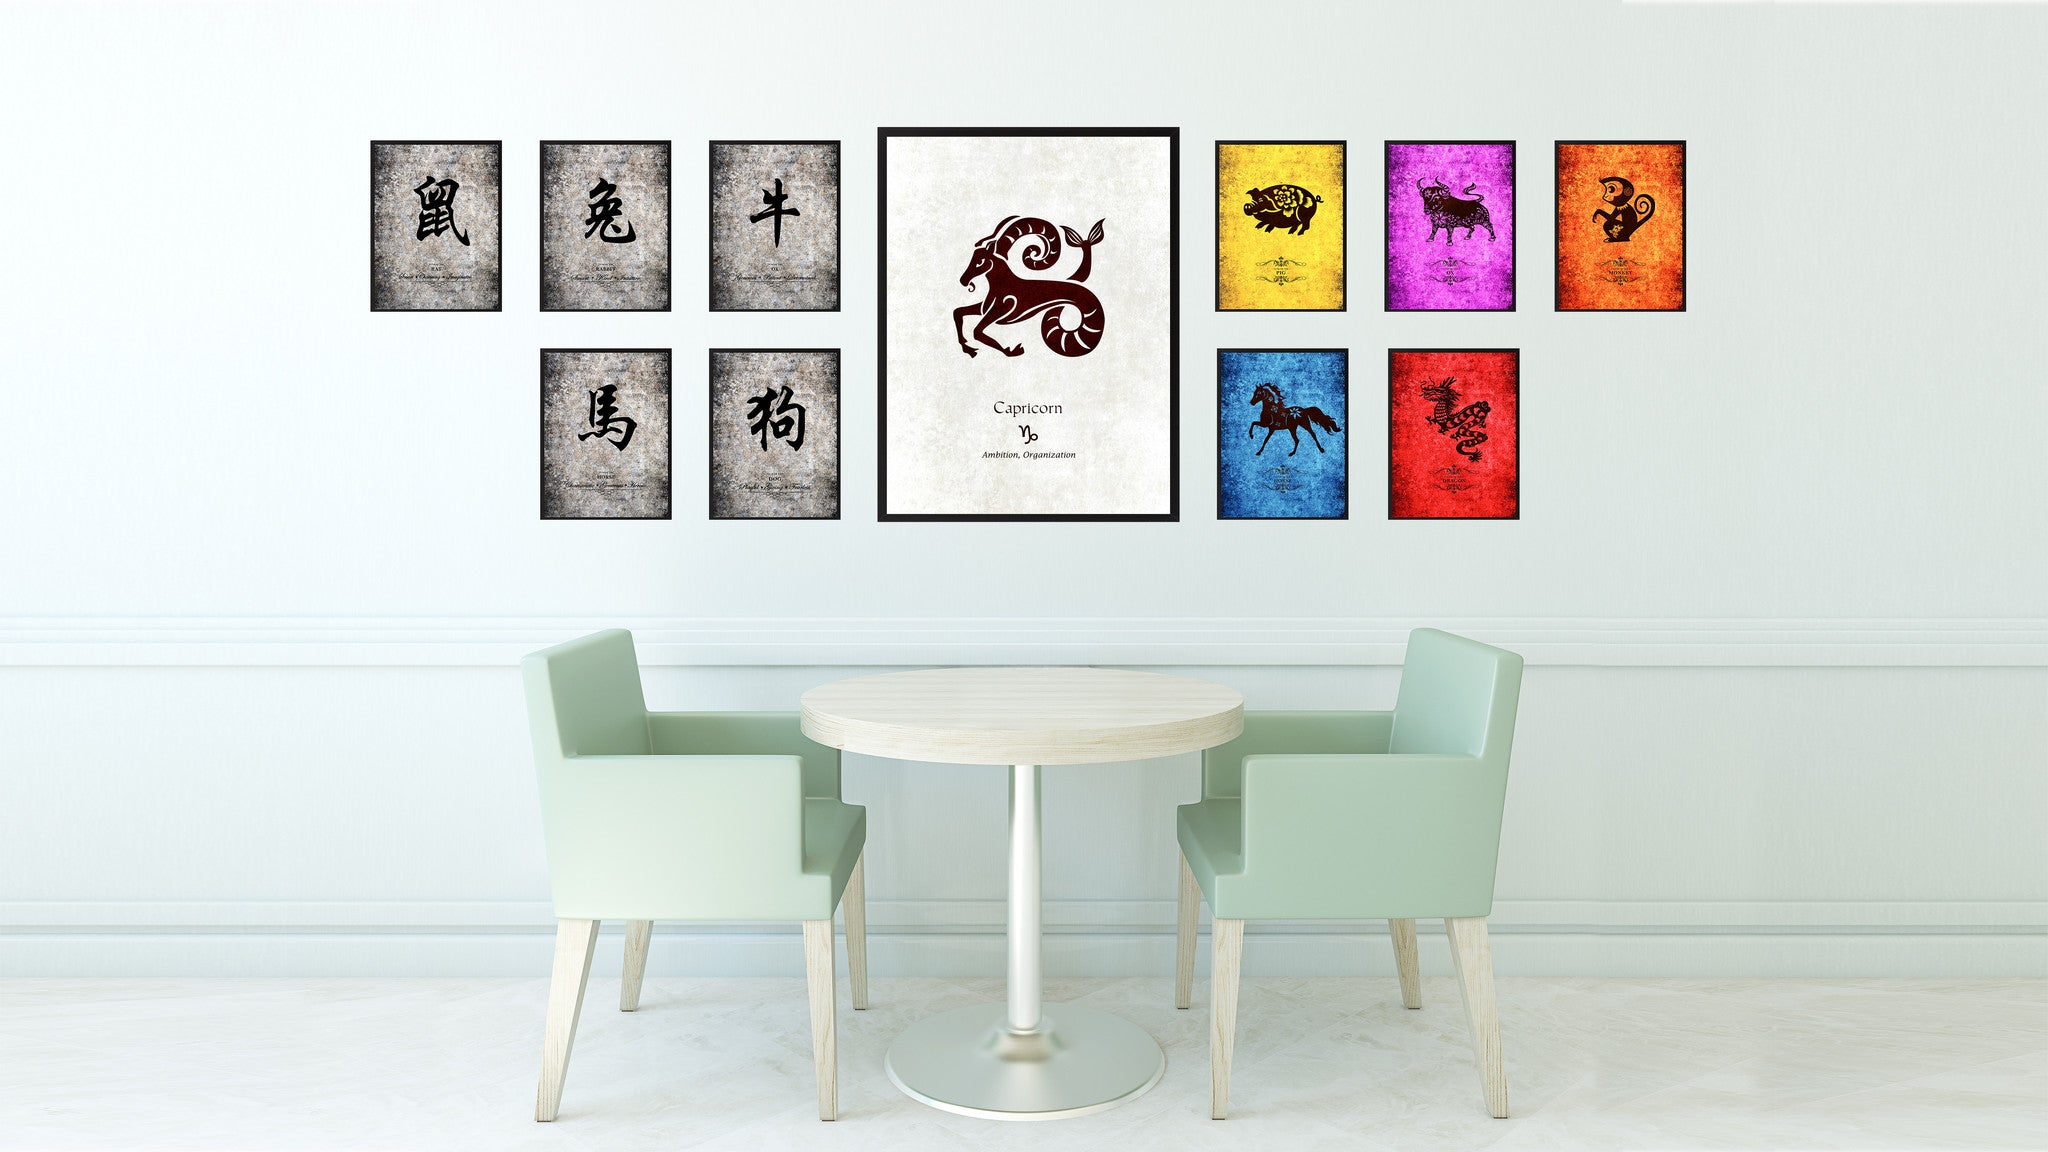 Zodiac Capricorn Horoscope Astrology Canvas Print, Picture Frame Home Decor Wall Art Gift